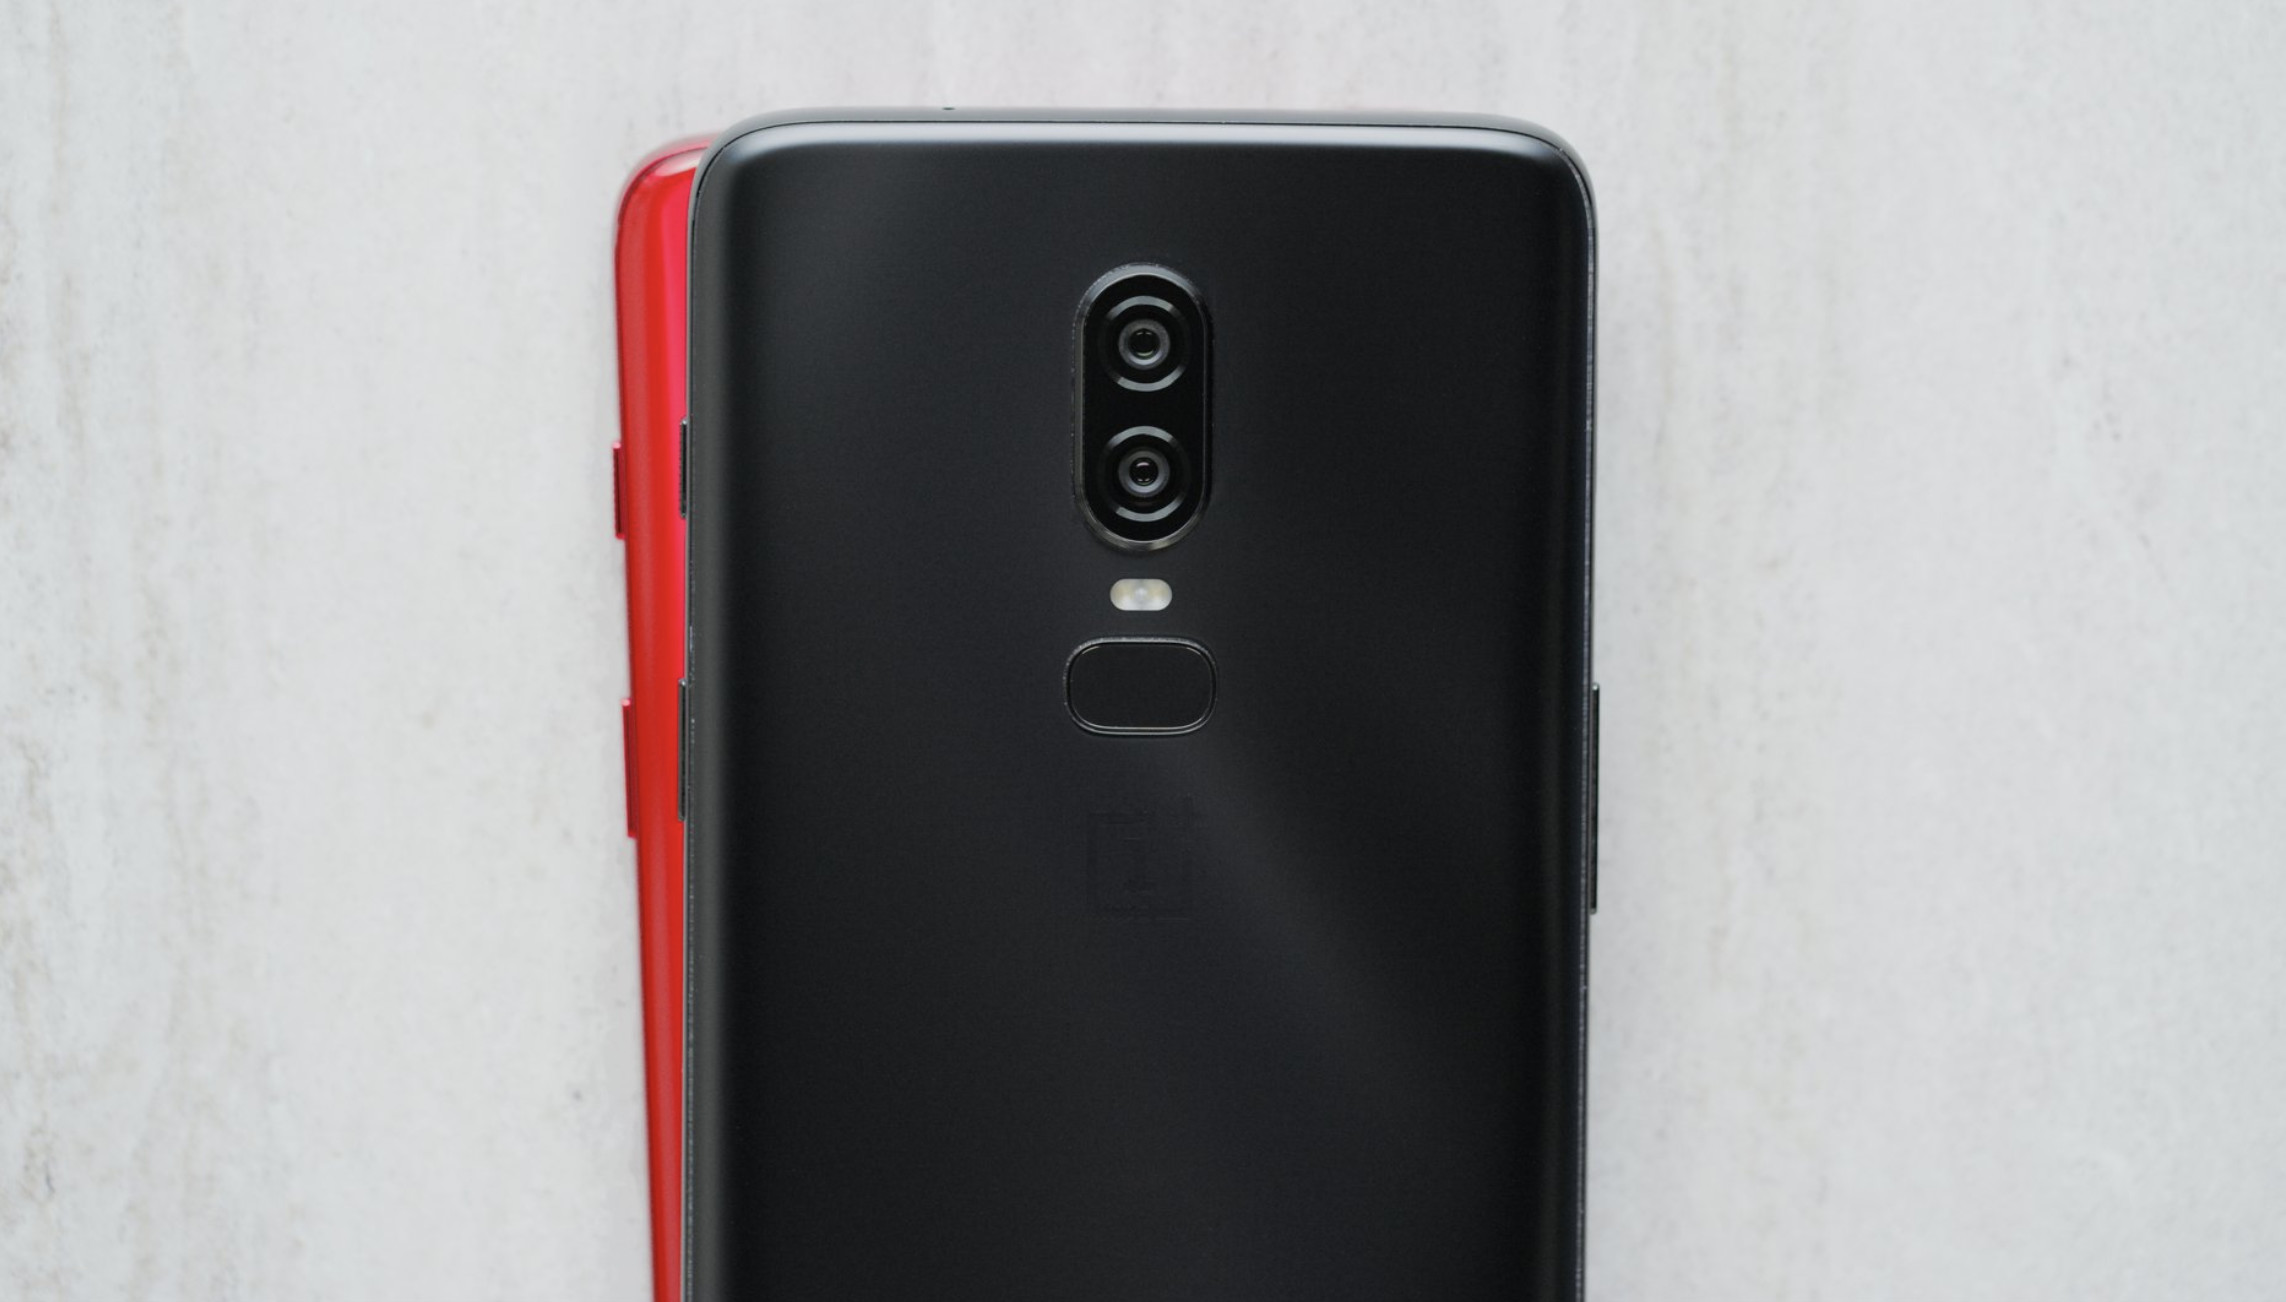 OnePlus 6 Red is a limited edition model that's launching July 10th